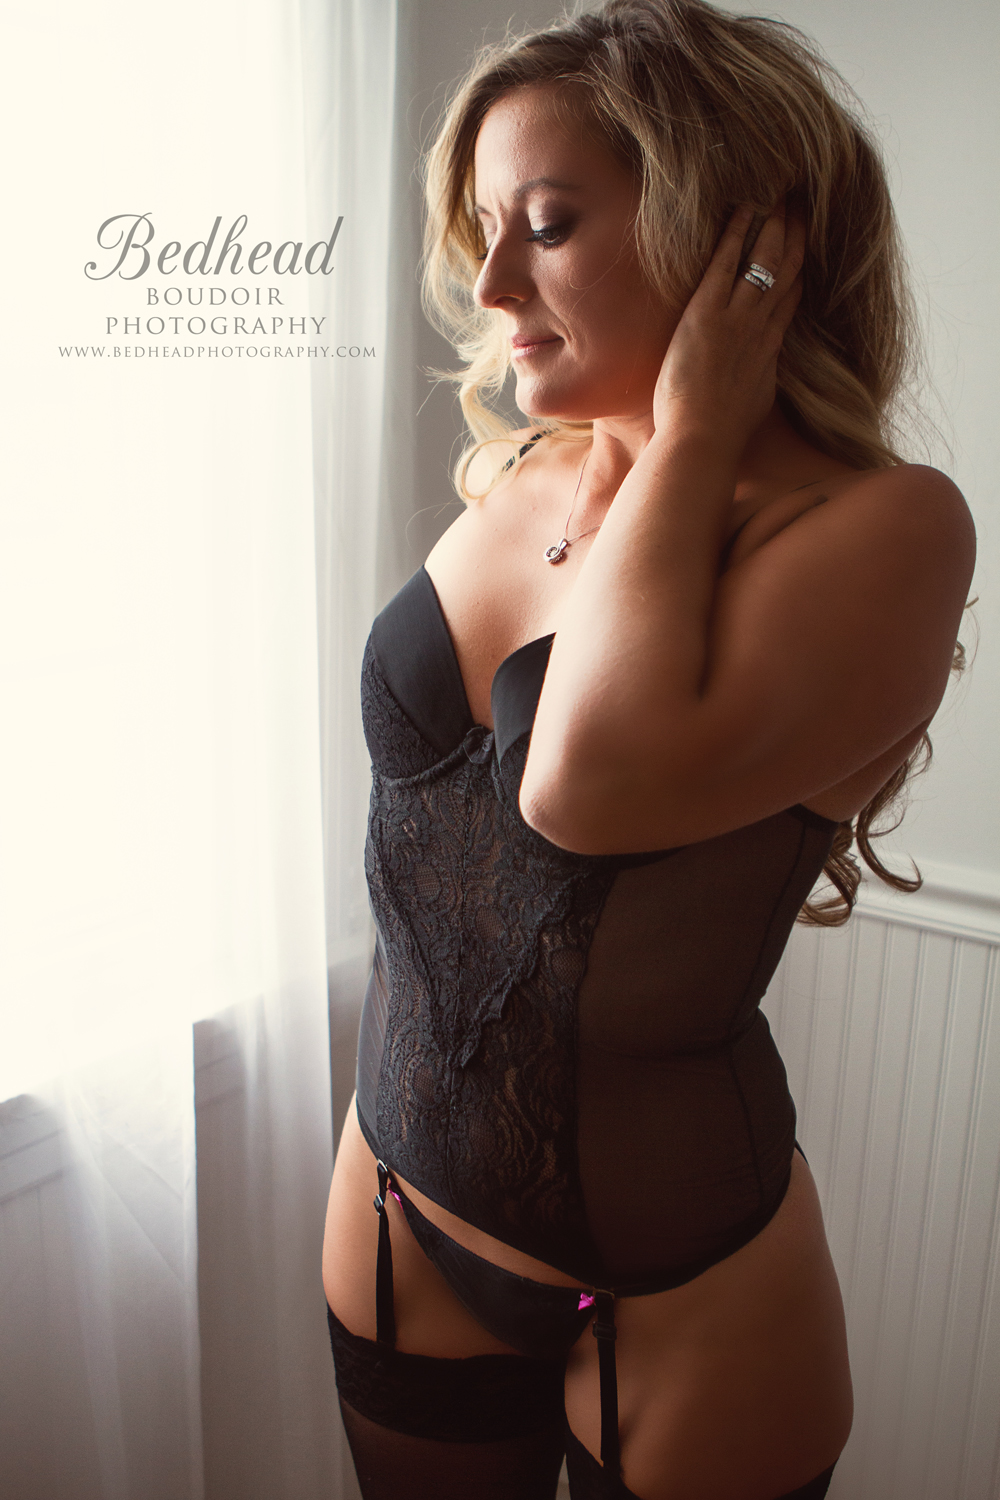 Bedhead Boudoir Photo shoot Chicago area